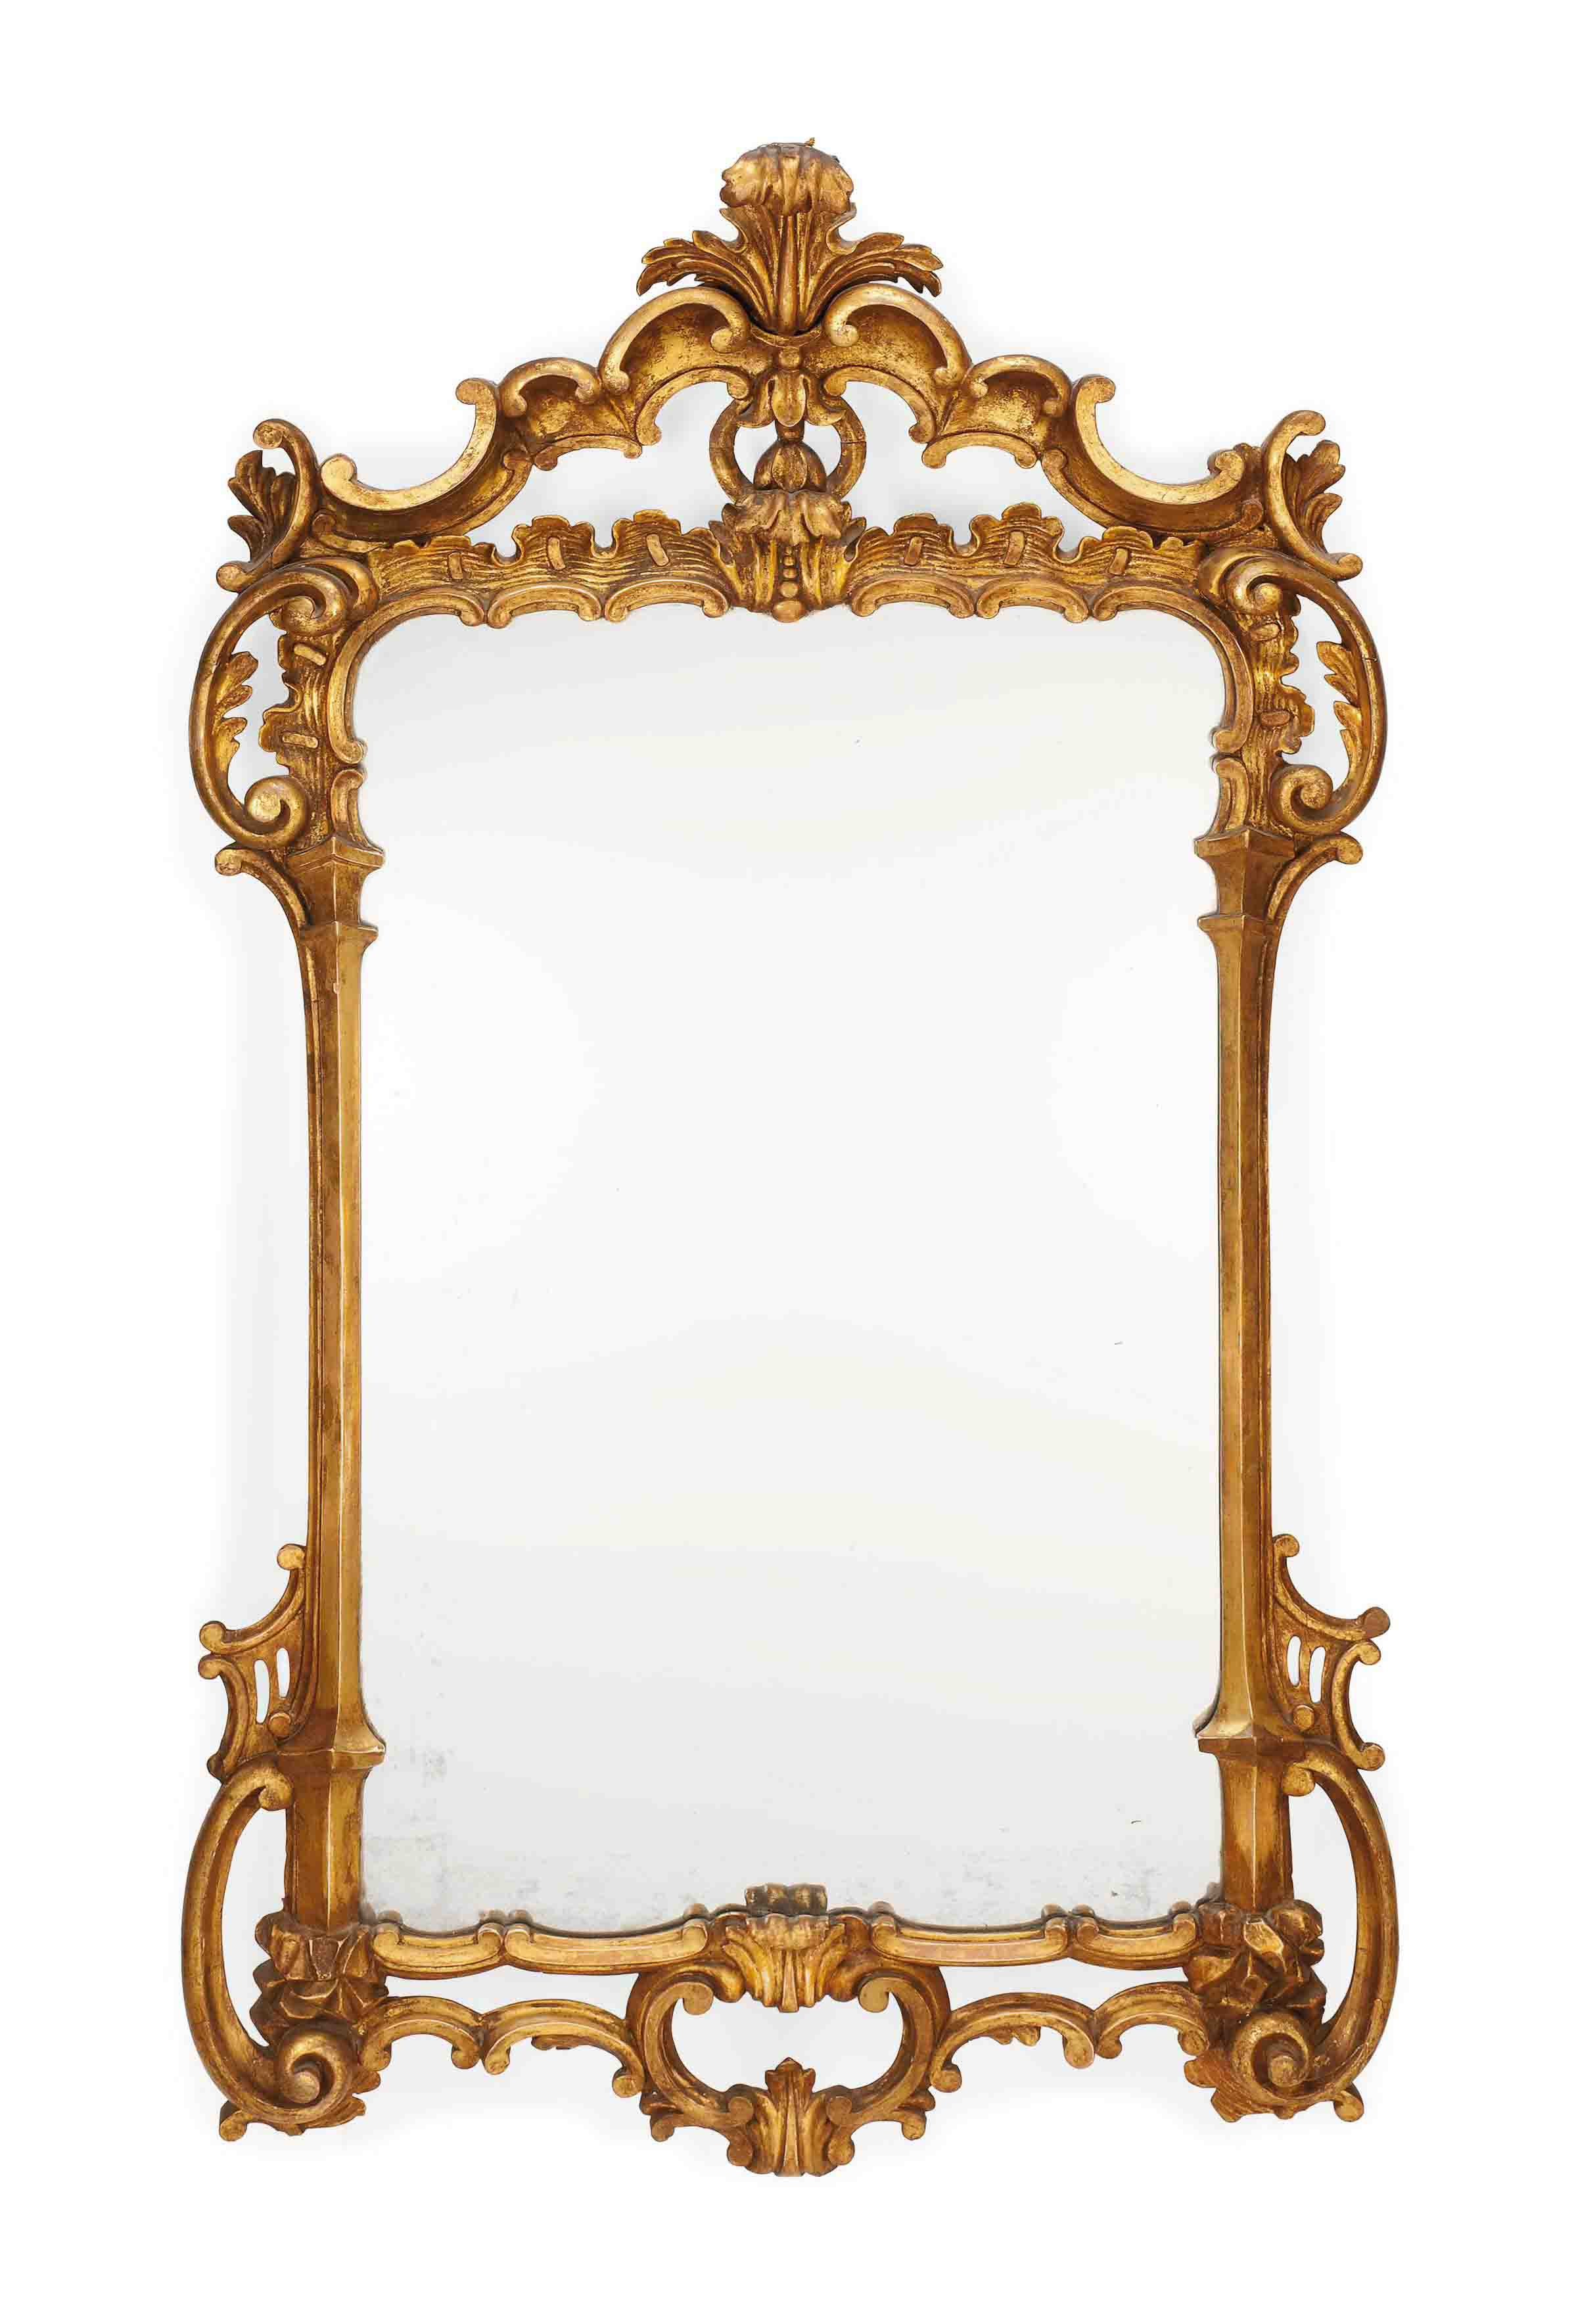 A MID-VICTORIAN CARVED GILTWOOD MIRROR